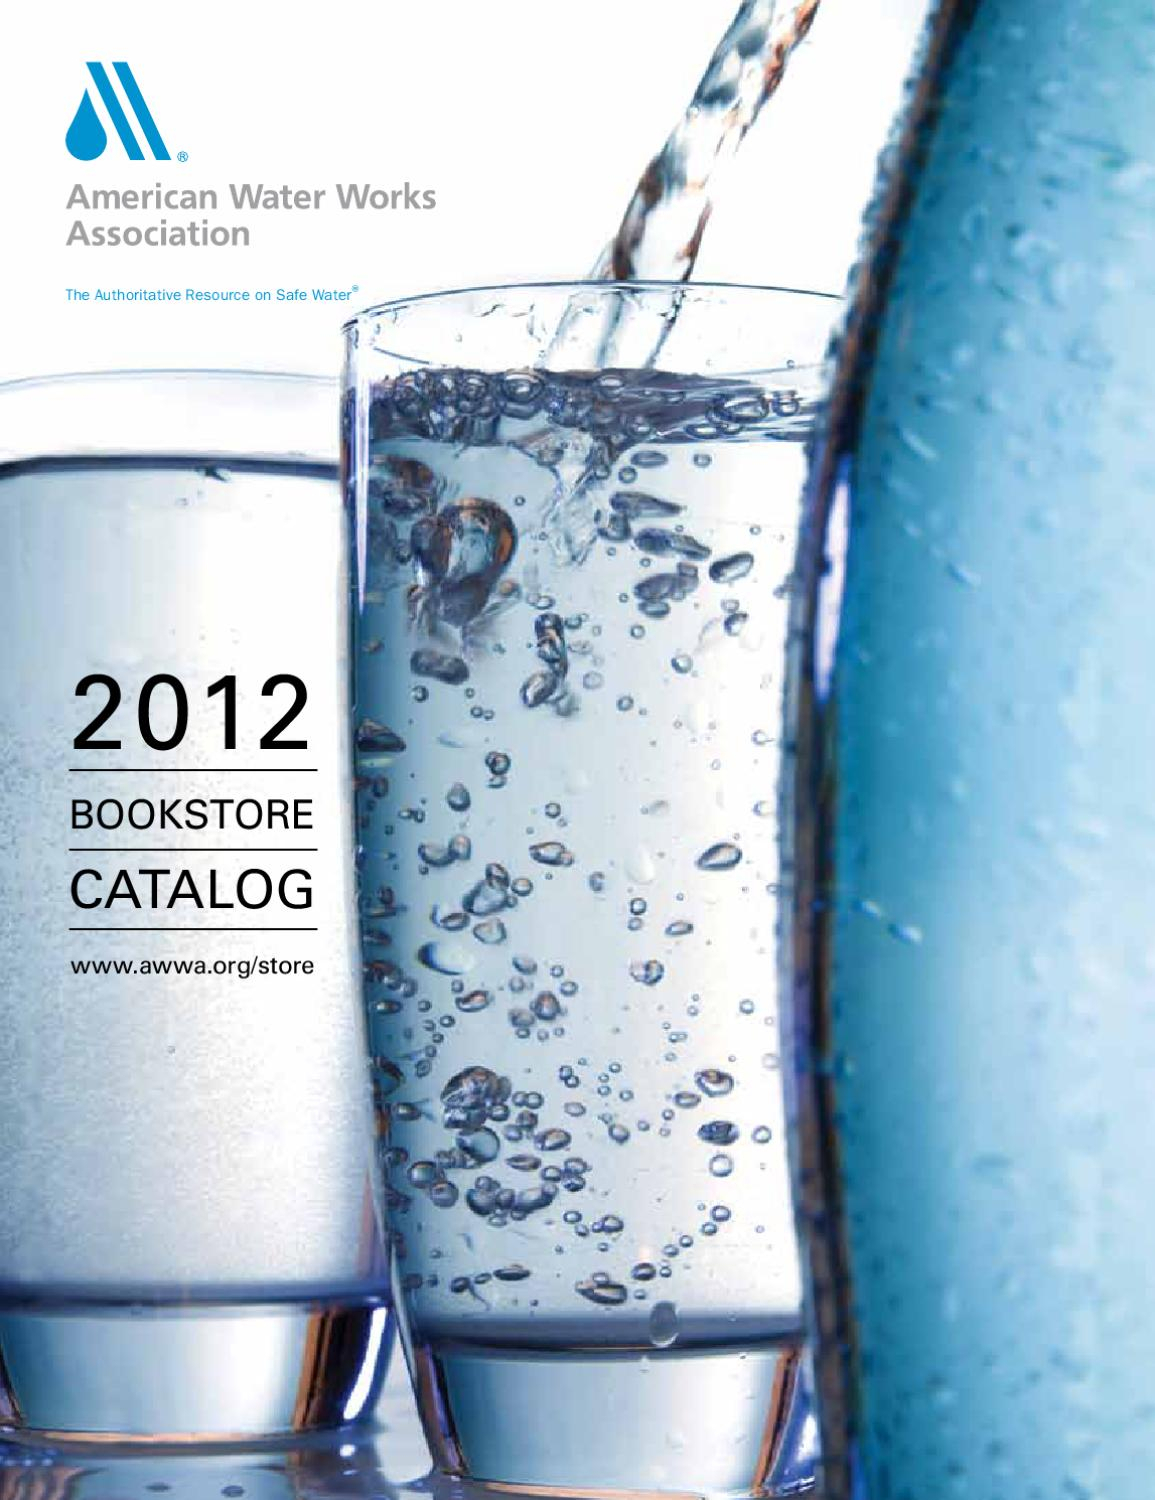 Awwa M22 Spreadsheet In Awwa Catalog 2012  American Water Works Assocpharmabooks  Issuu